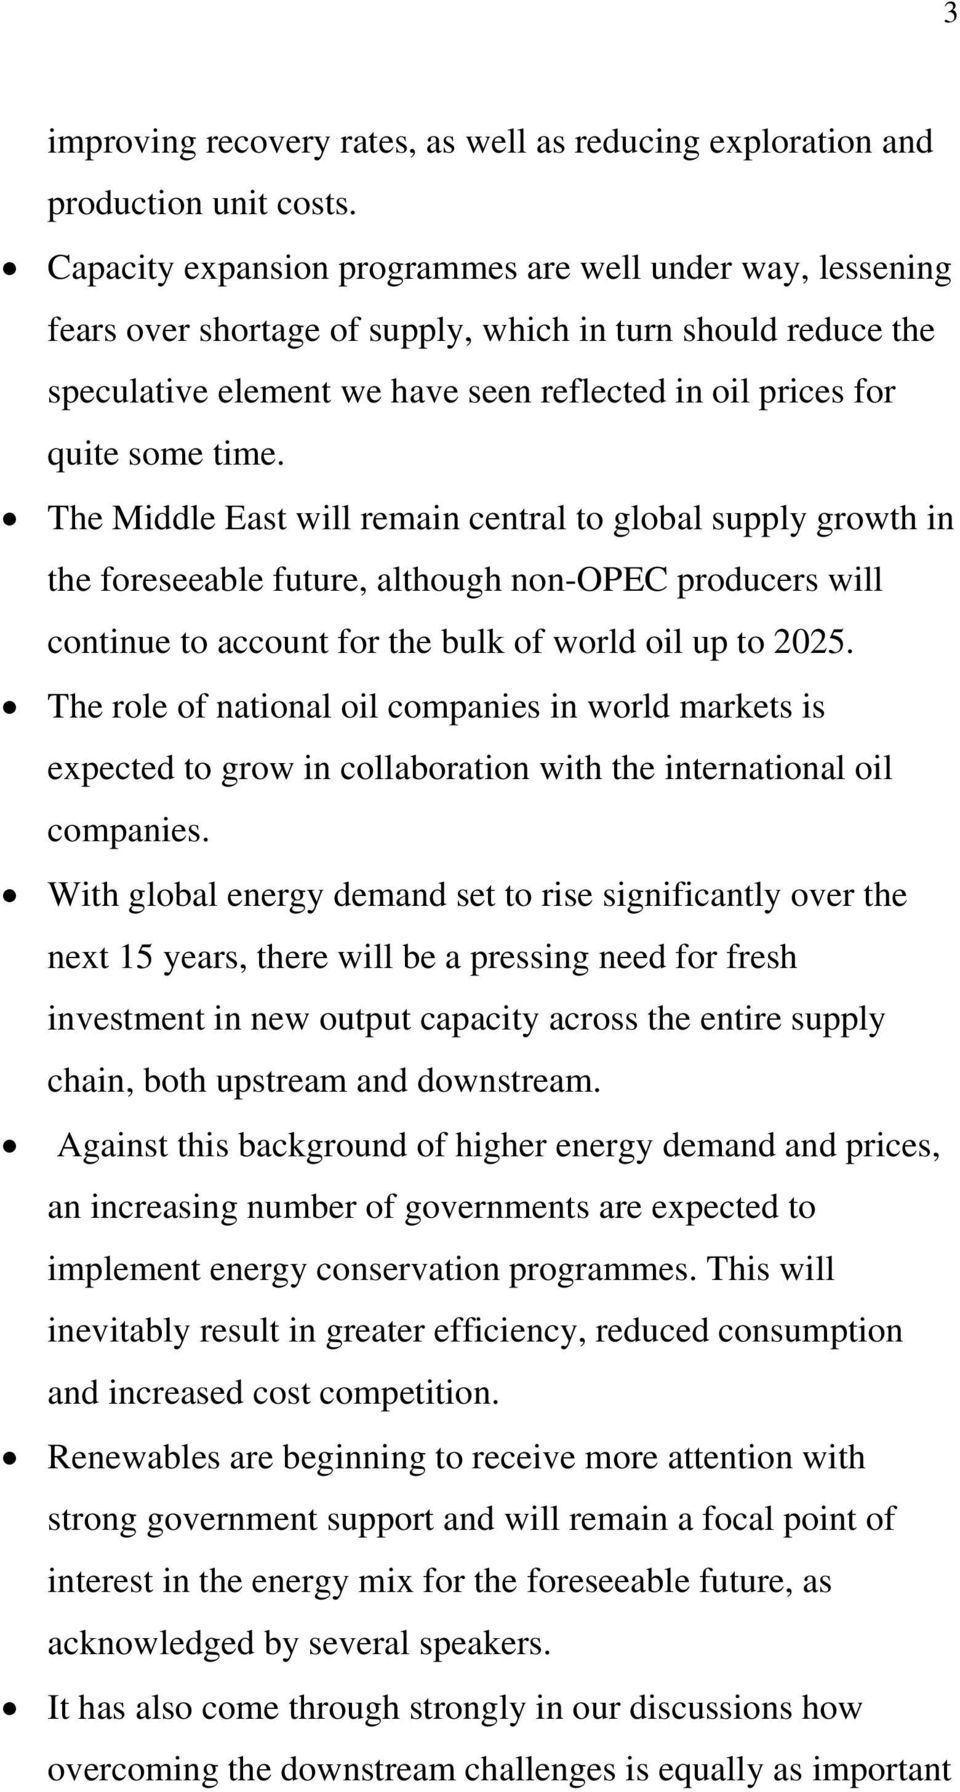 The Middle East will remain central to global supply growth in the foreseeable future, although non-opec producers will continue to account for the bulk of world oil up to 2025.